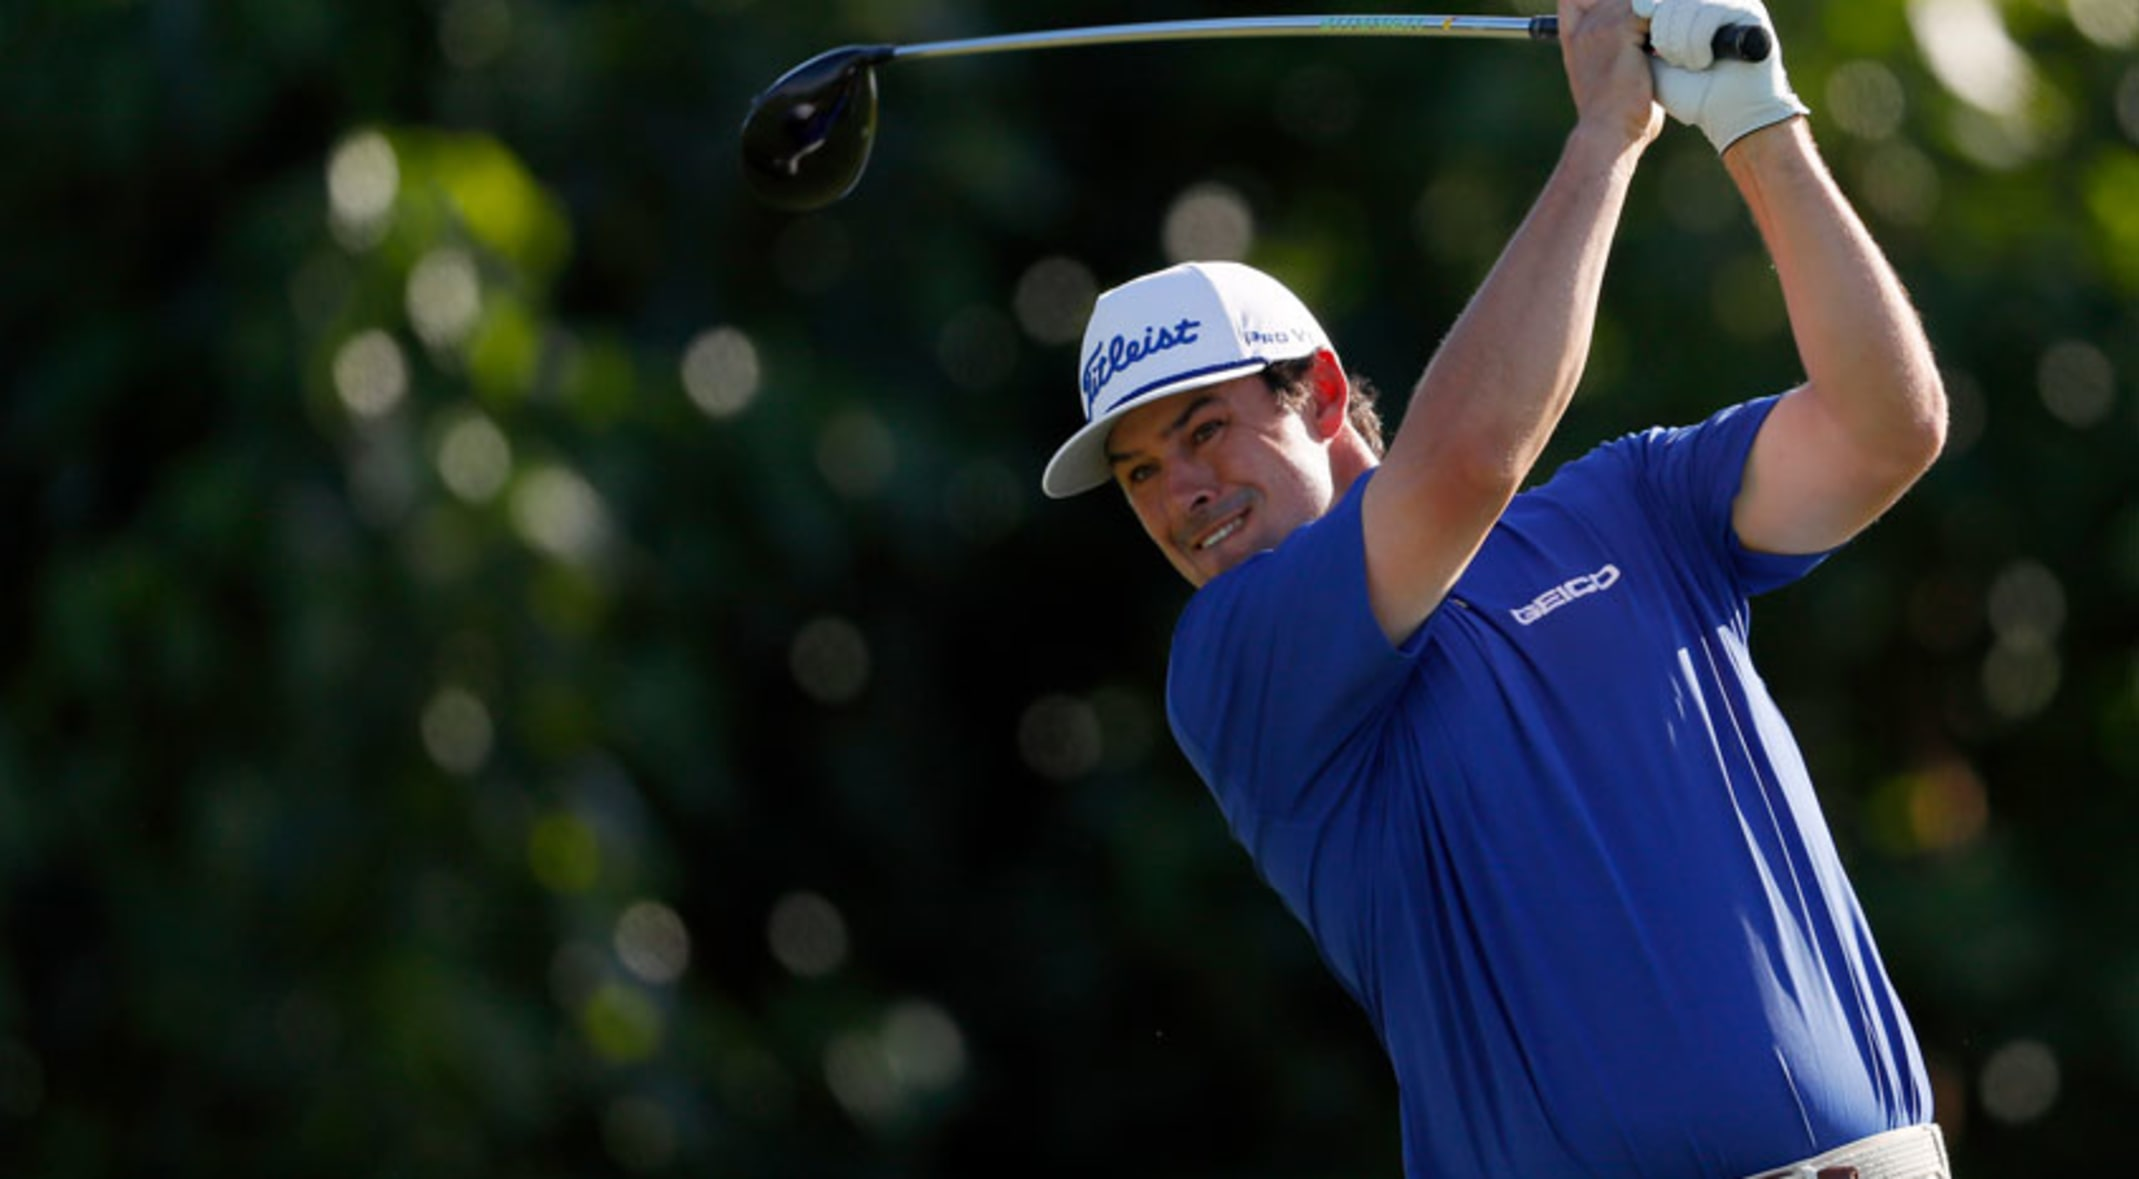 75ca16dac Johnson Wagner goes from alternate to 1-under 71 at Arnold Palmer ...